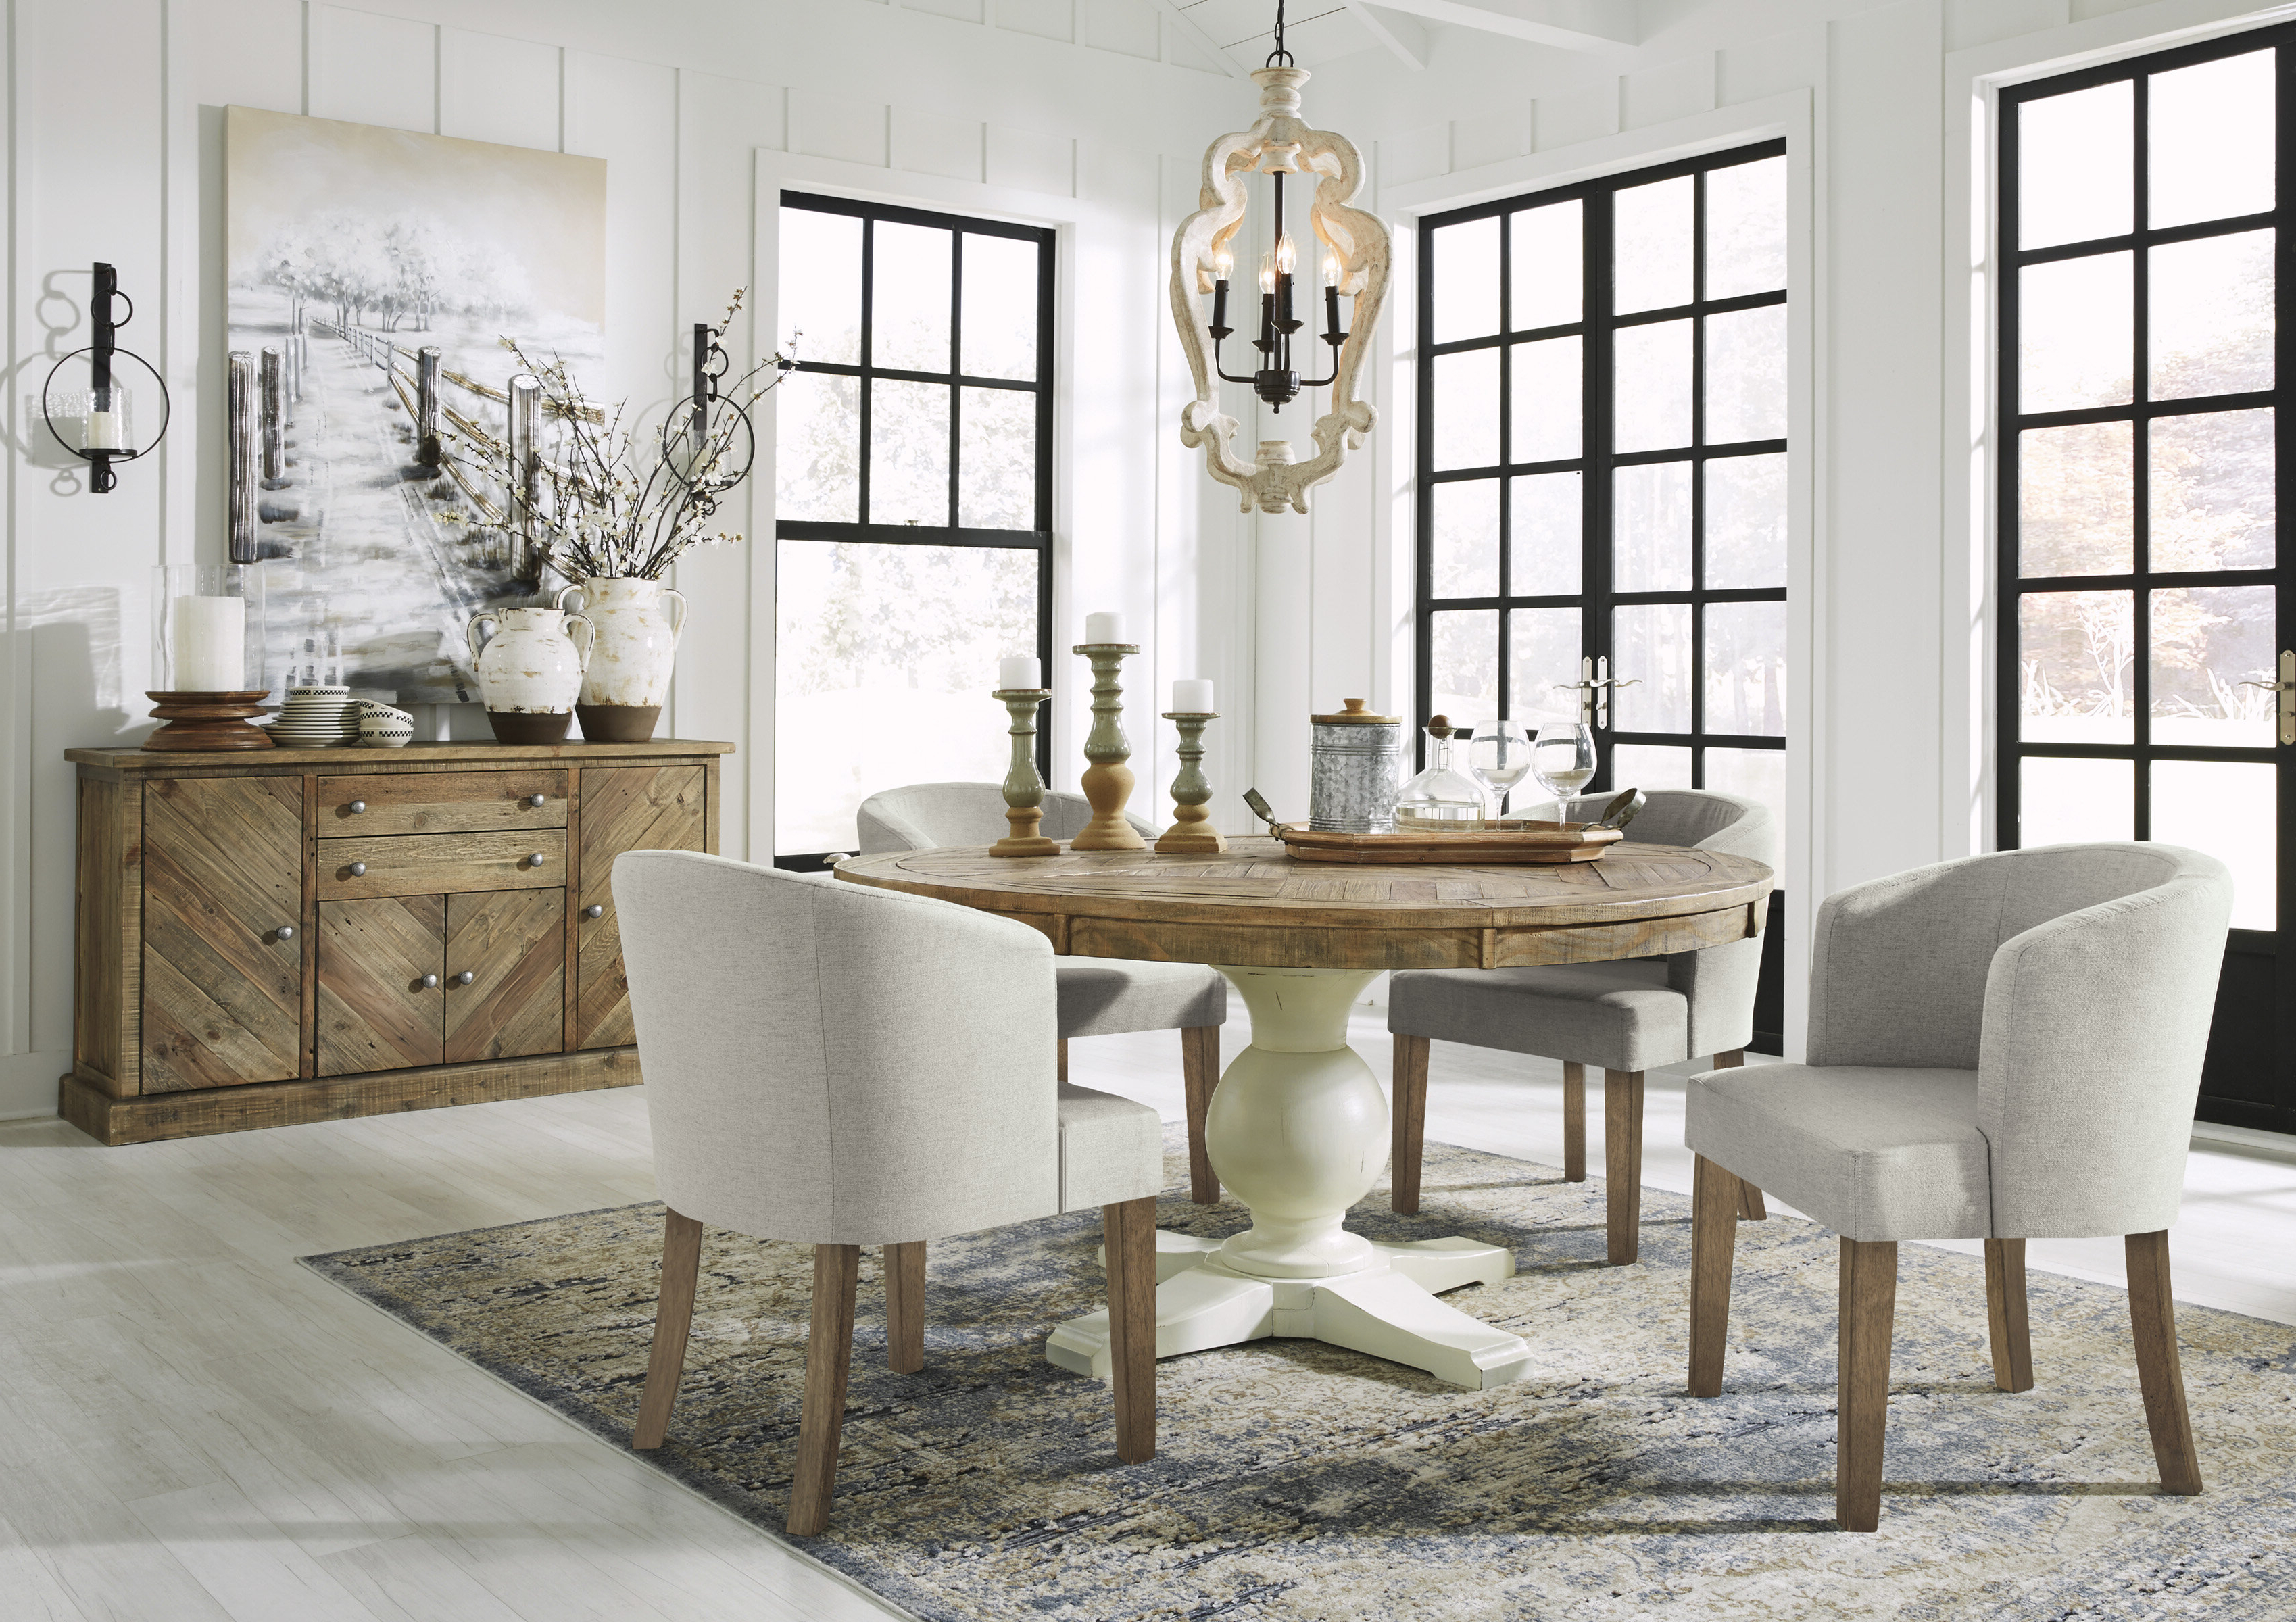 Mukai 5 Piece Dining Sets Within Preferred Gracie Oaks Jessamine 5 Piece Dining Set (View 13 of 25)